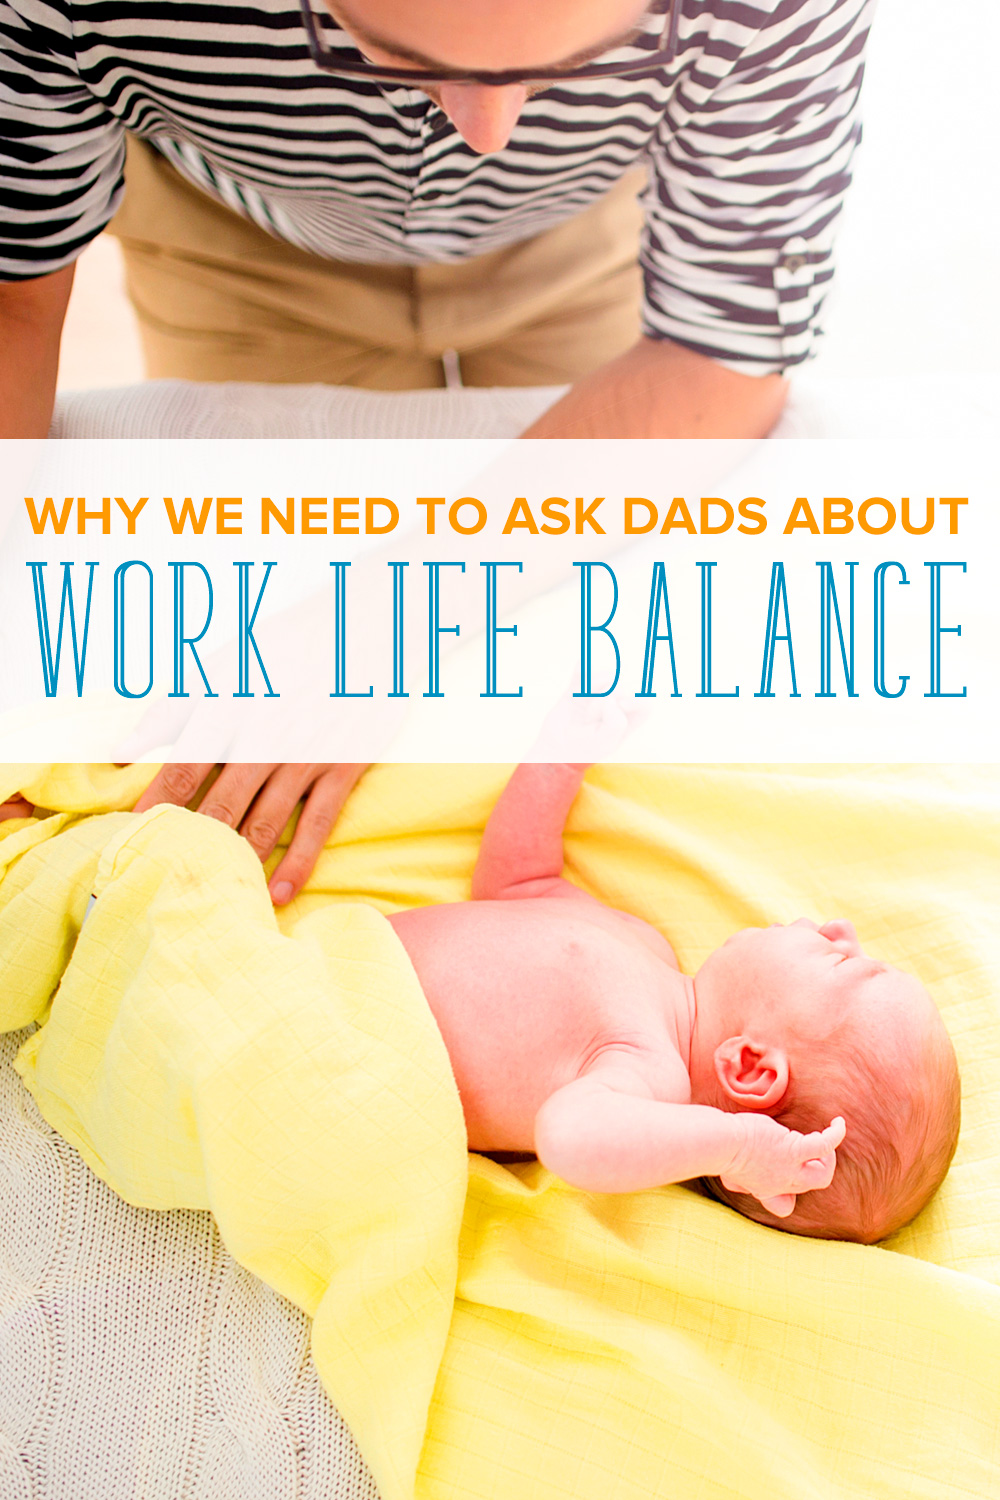 While moms are asked about work life balance, working fathers are excluded from the conversation. Here's why we need to ask dads about work life balance.